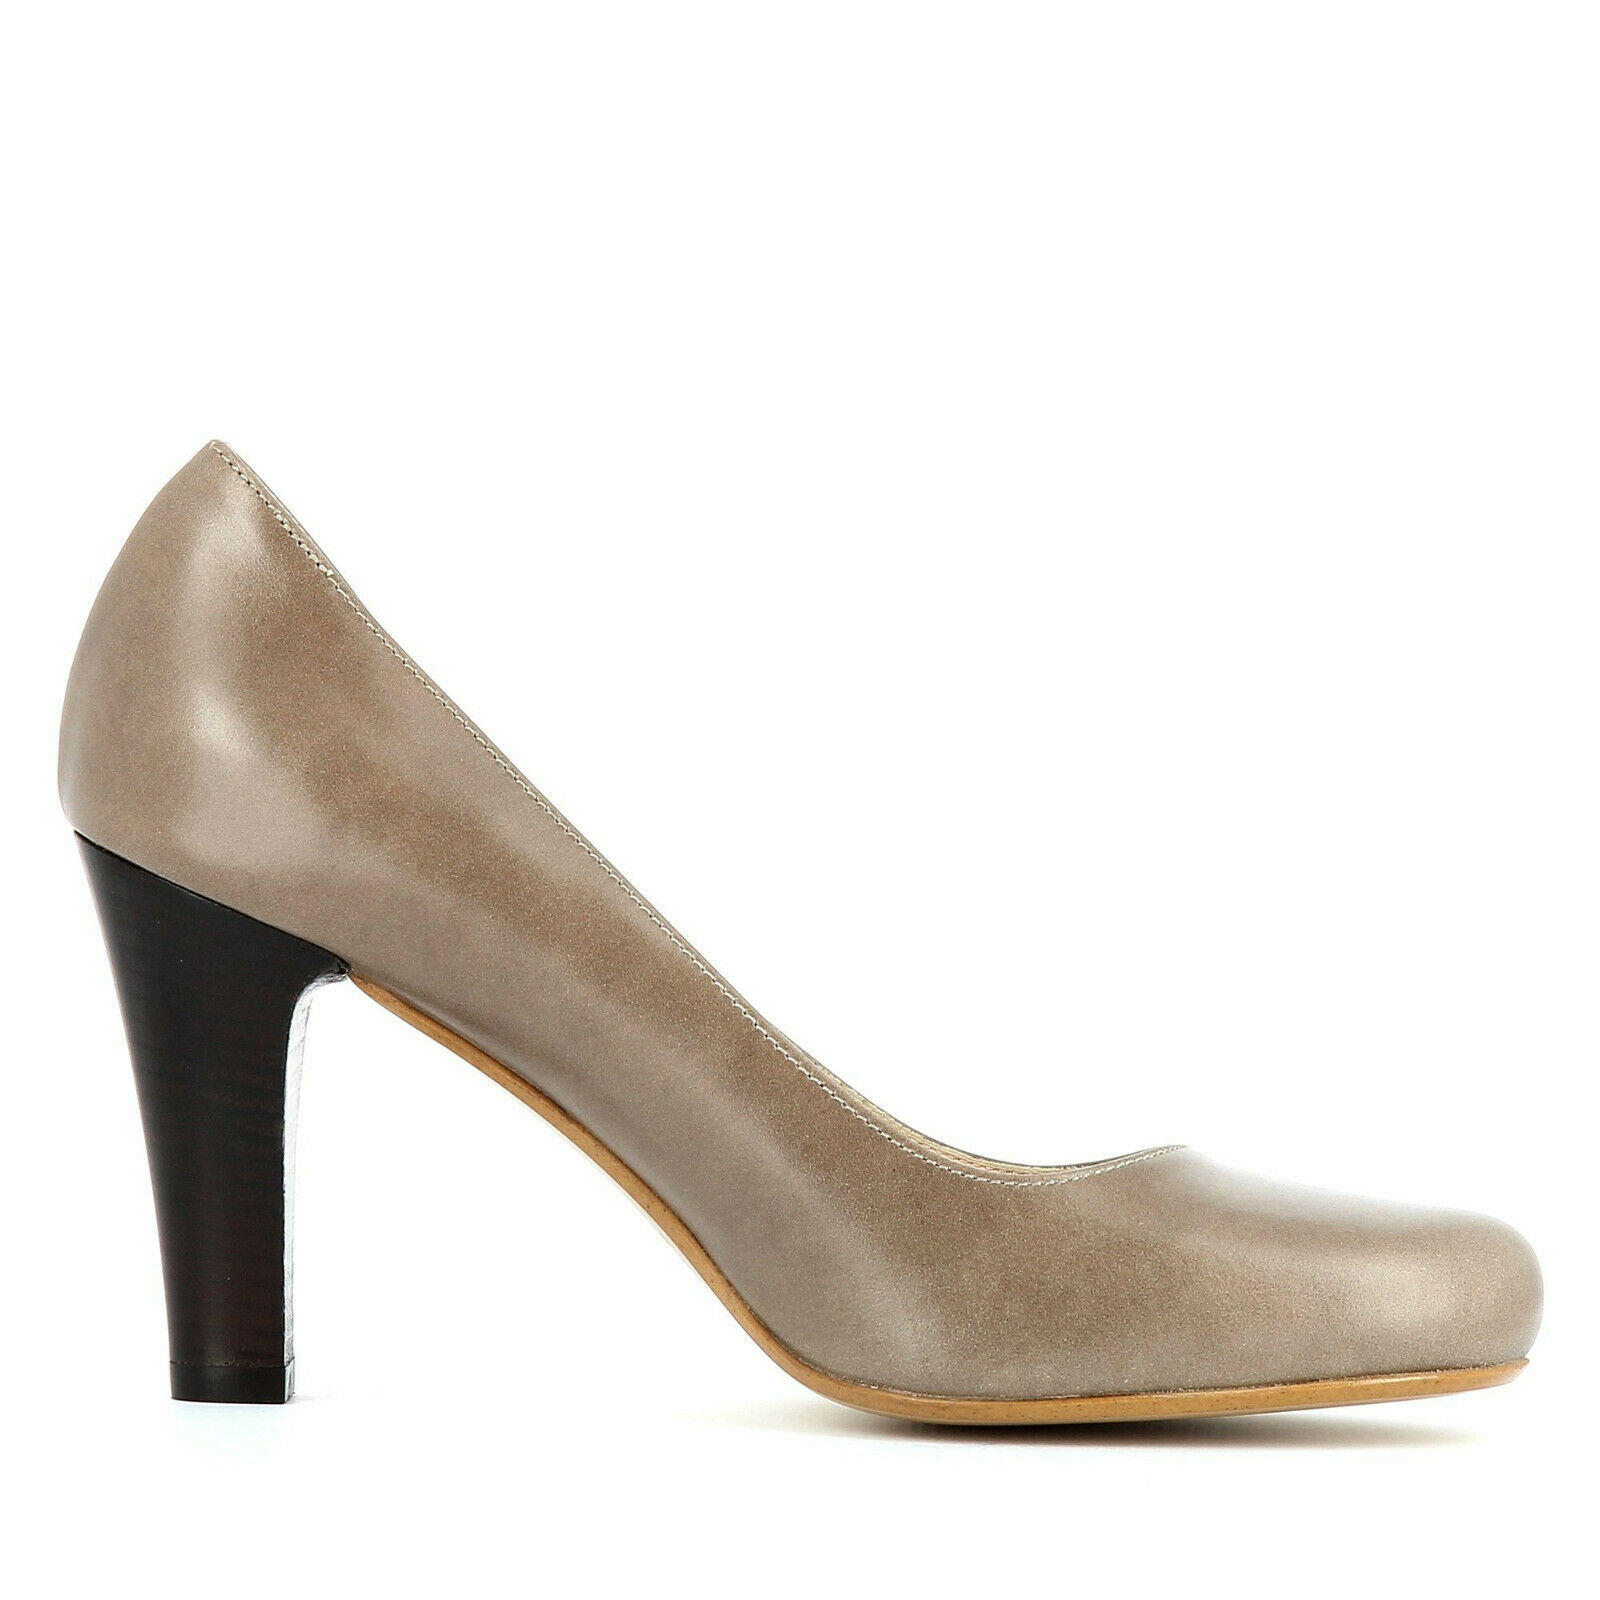 Evita Maria Pumps In Taupe Talla 39